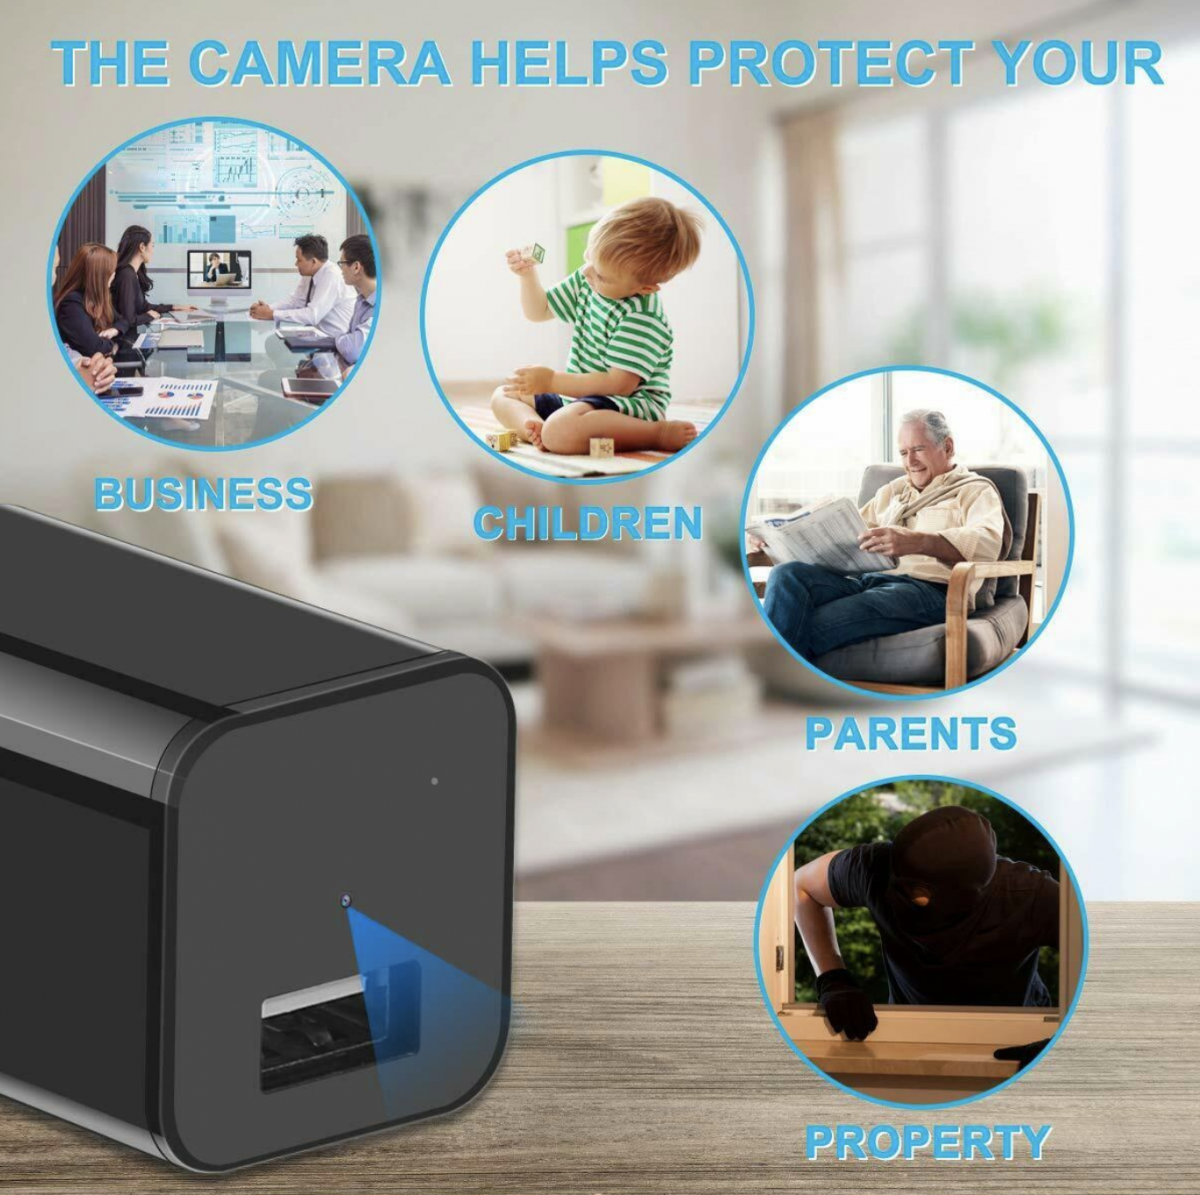 LAVENIR.VR Spy charger Camera is USB Charger Spy Camera – This security camera is a USB charger that charges portable devices with 1080p Full HD video- 90° angles wide.